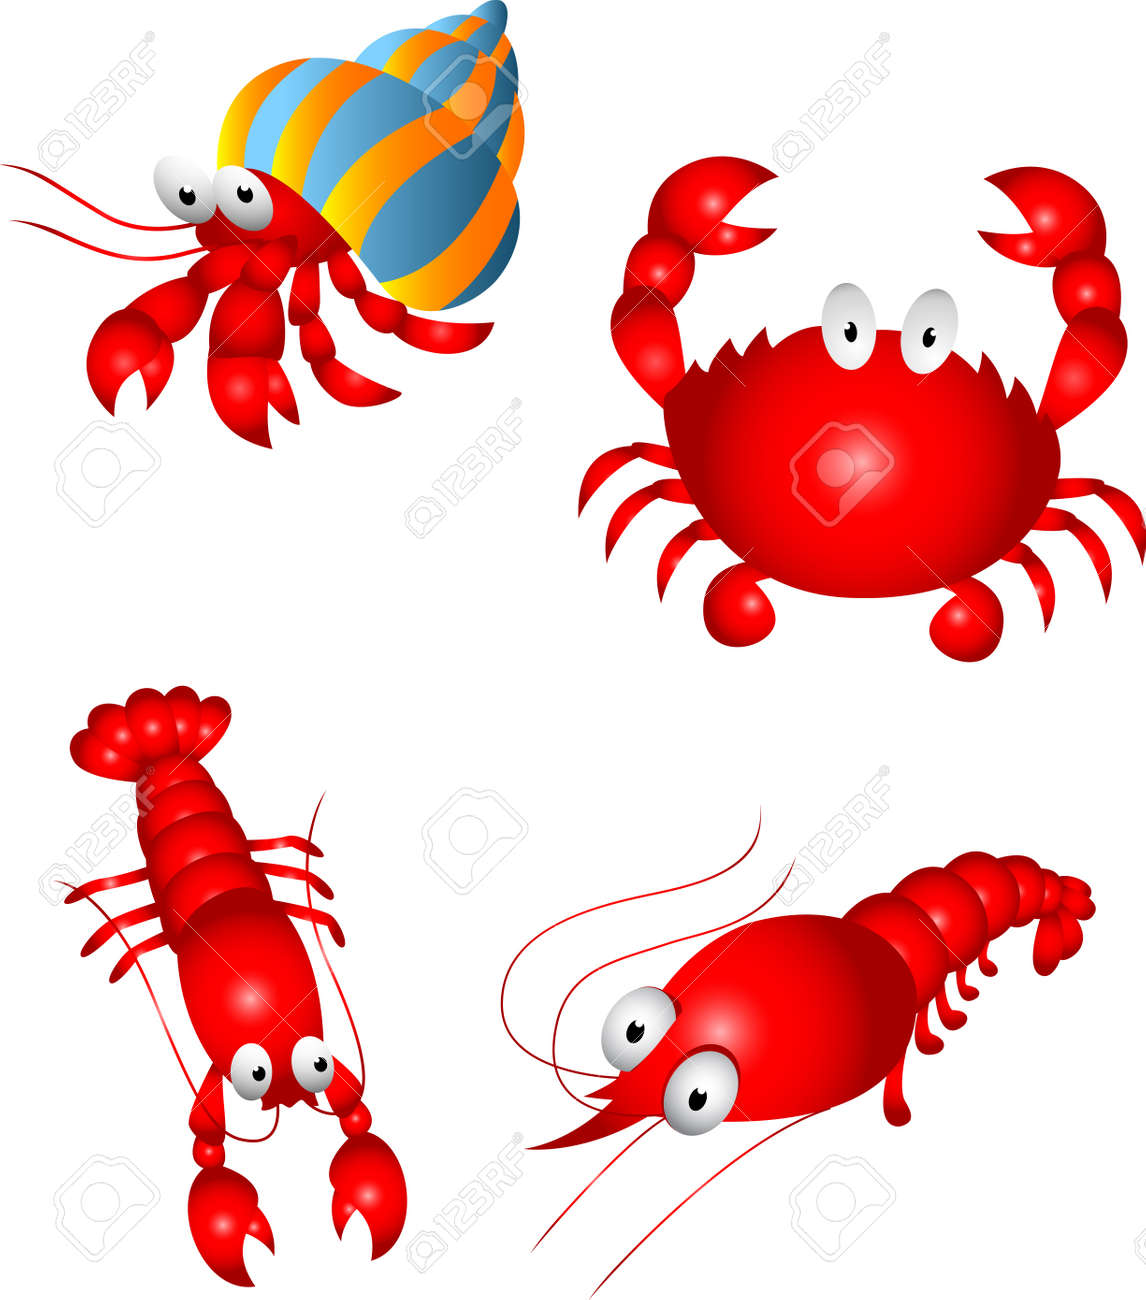 Crustacean Character Stock Vector - 13779065